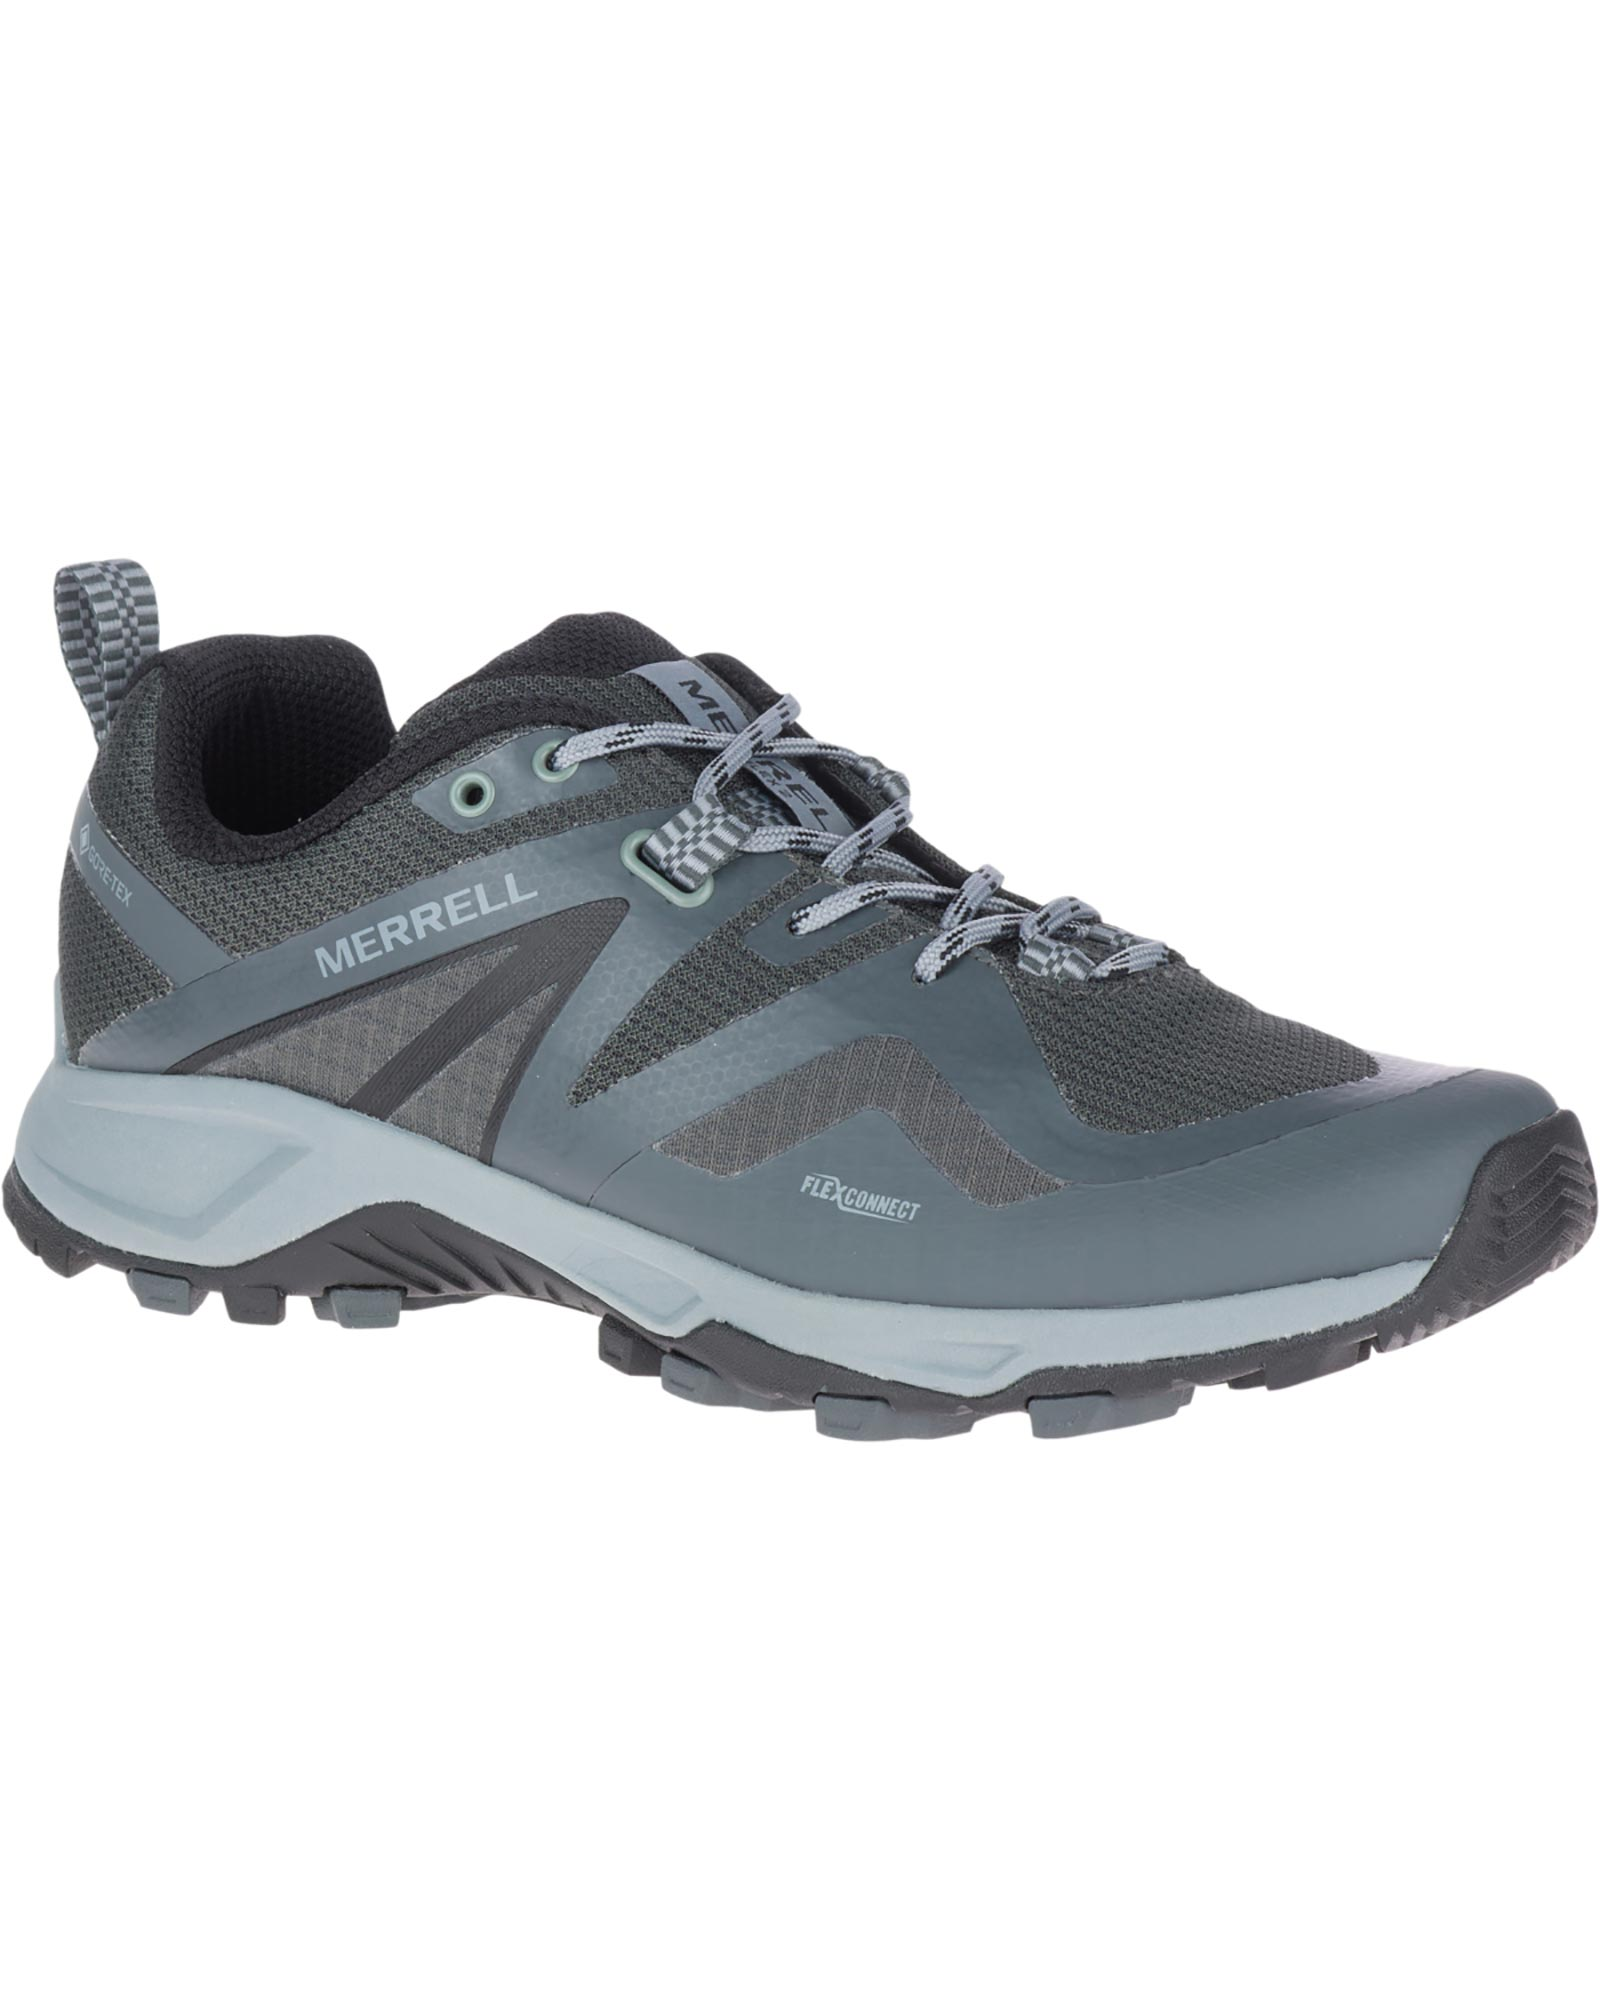 Merrell Men's MQM Flex 2 GORE-TEX Invisible Fit Walking Shoes 0